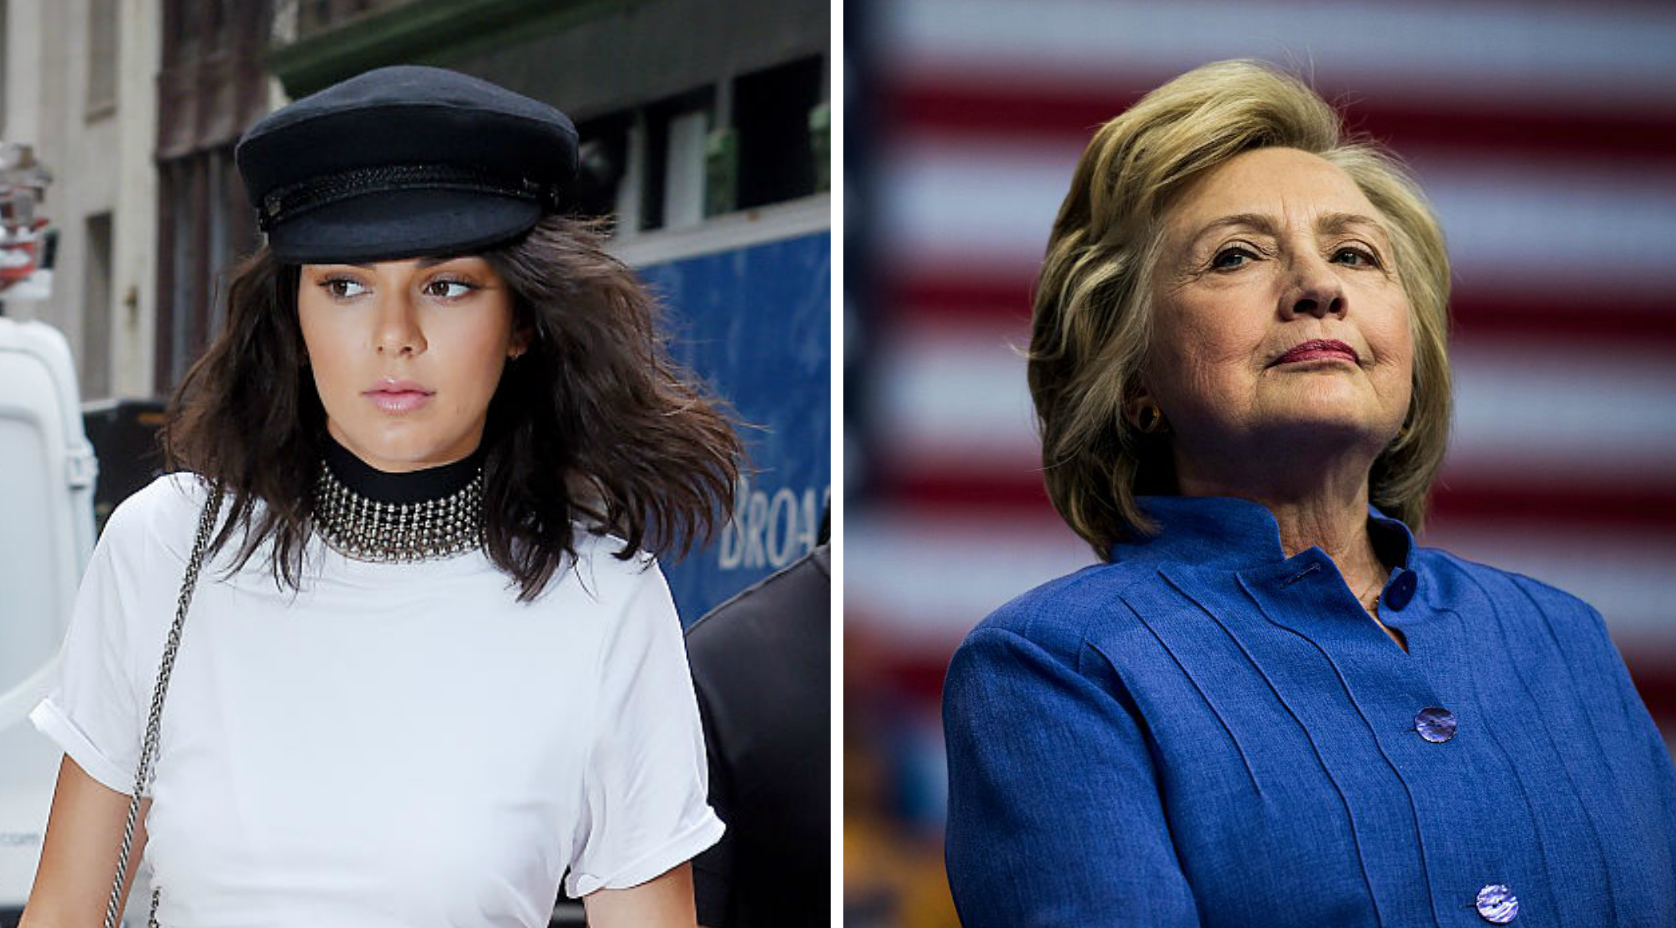 Kendall Jenner wants Hillary Clinton to wear this *one* outfit of hers